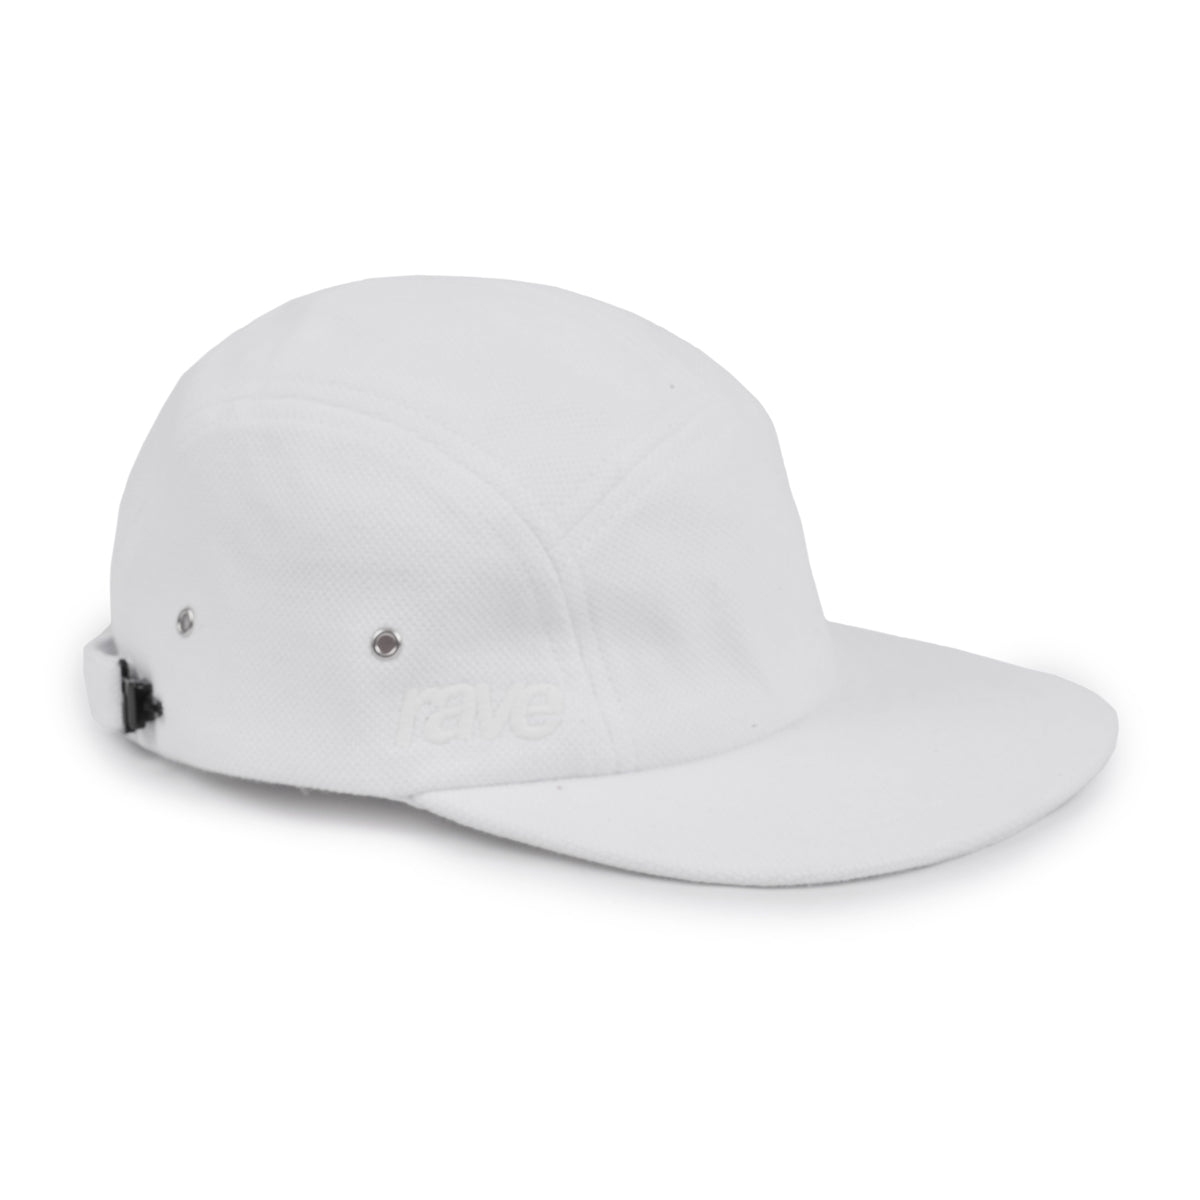 GRAND SLAM white cap - RAVE skateboards